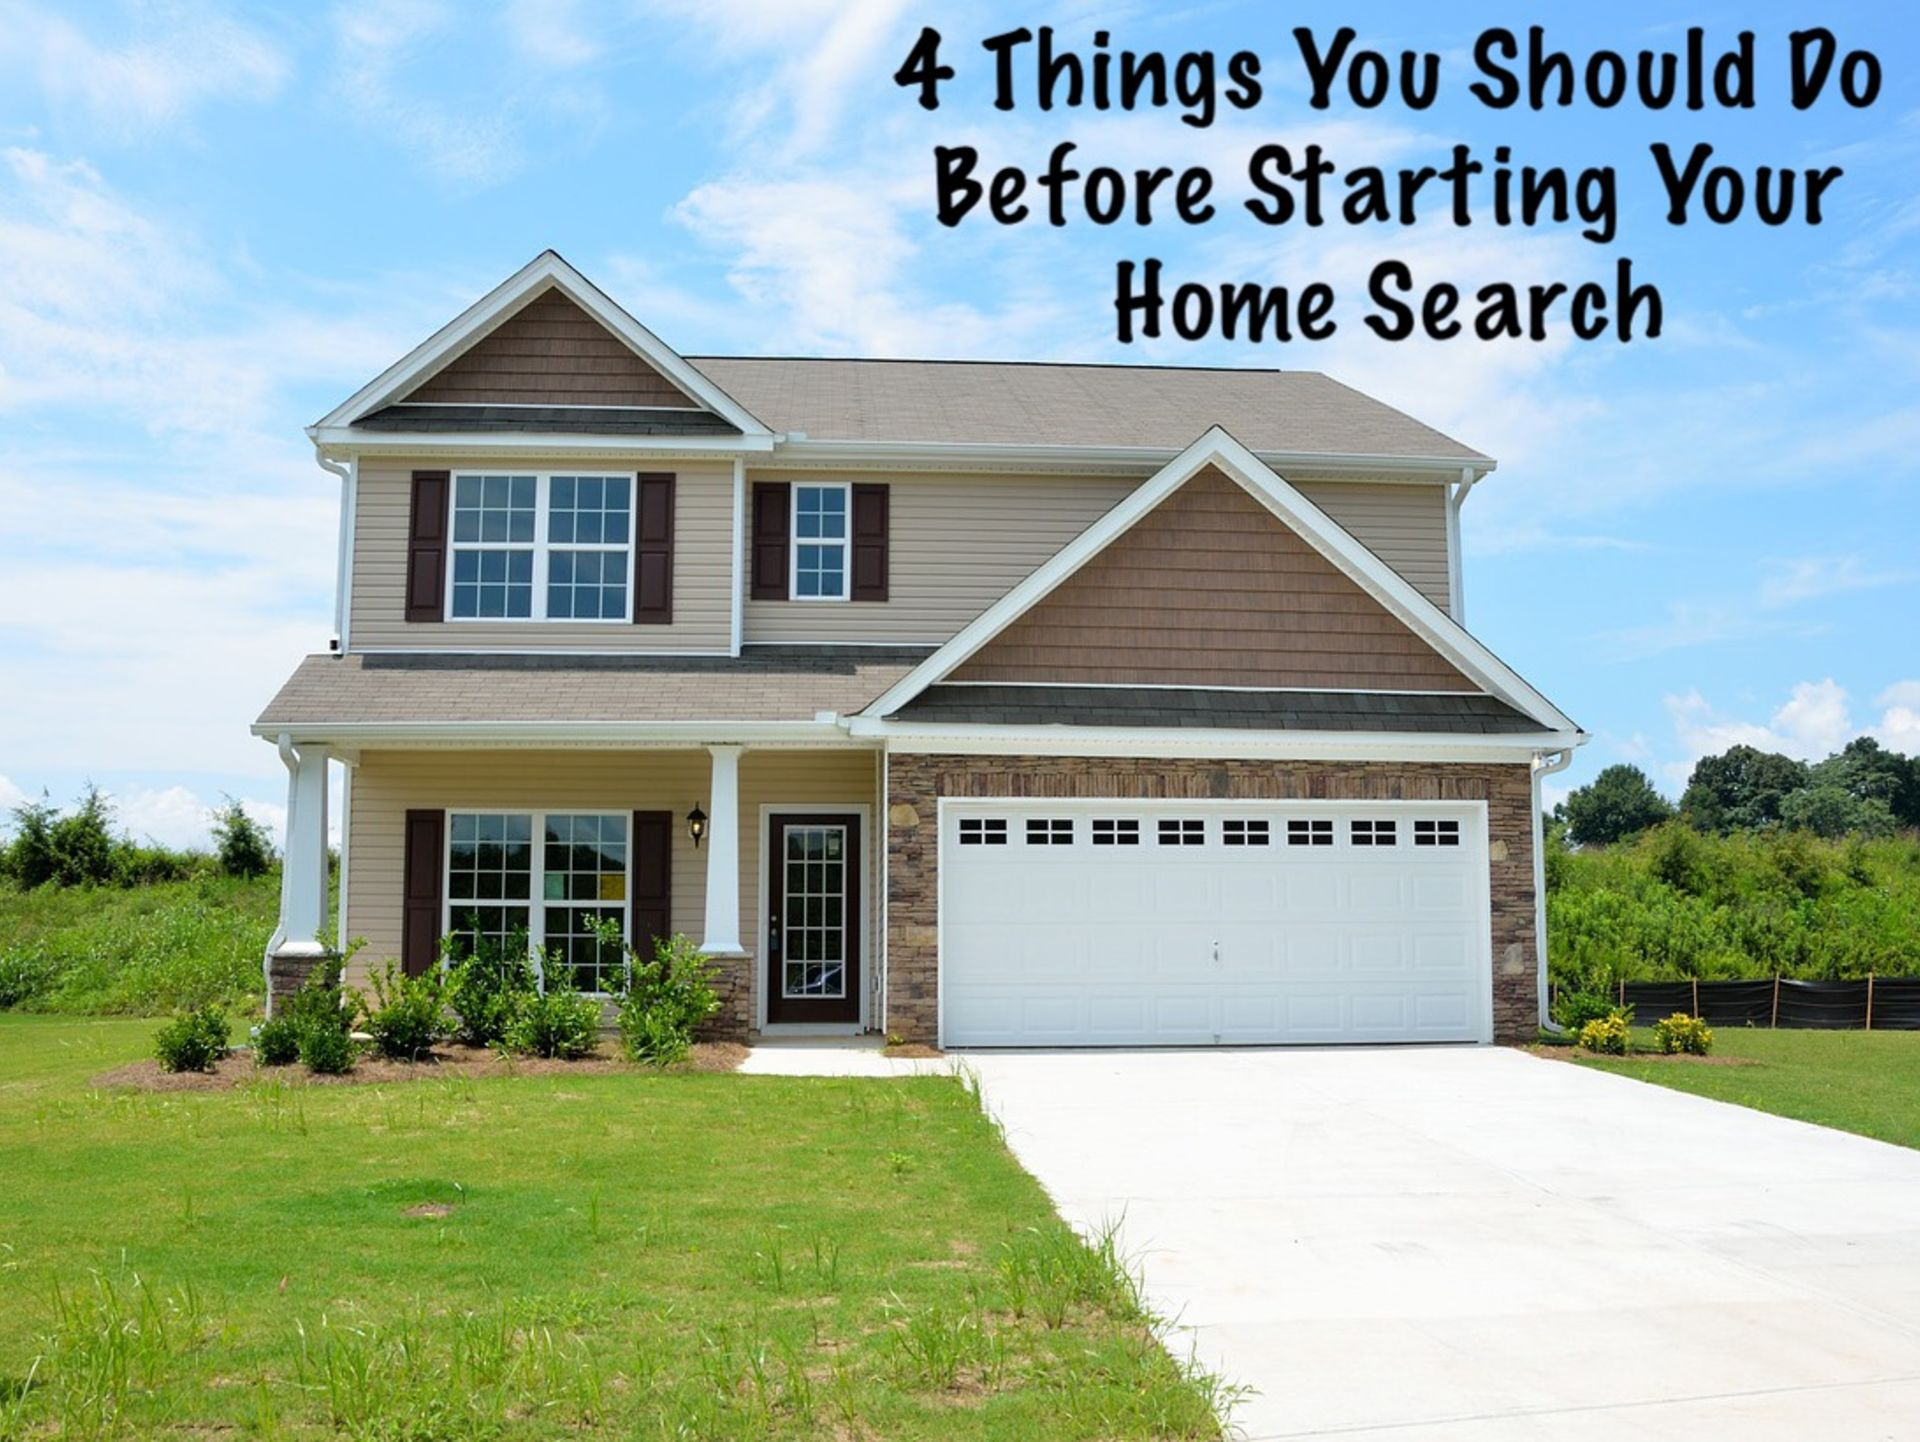 4 Things You Should Do Before Starting Your Home Search In Springfield, Missouri